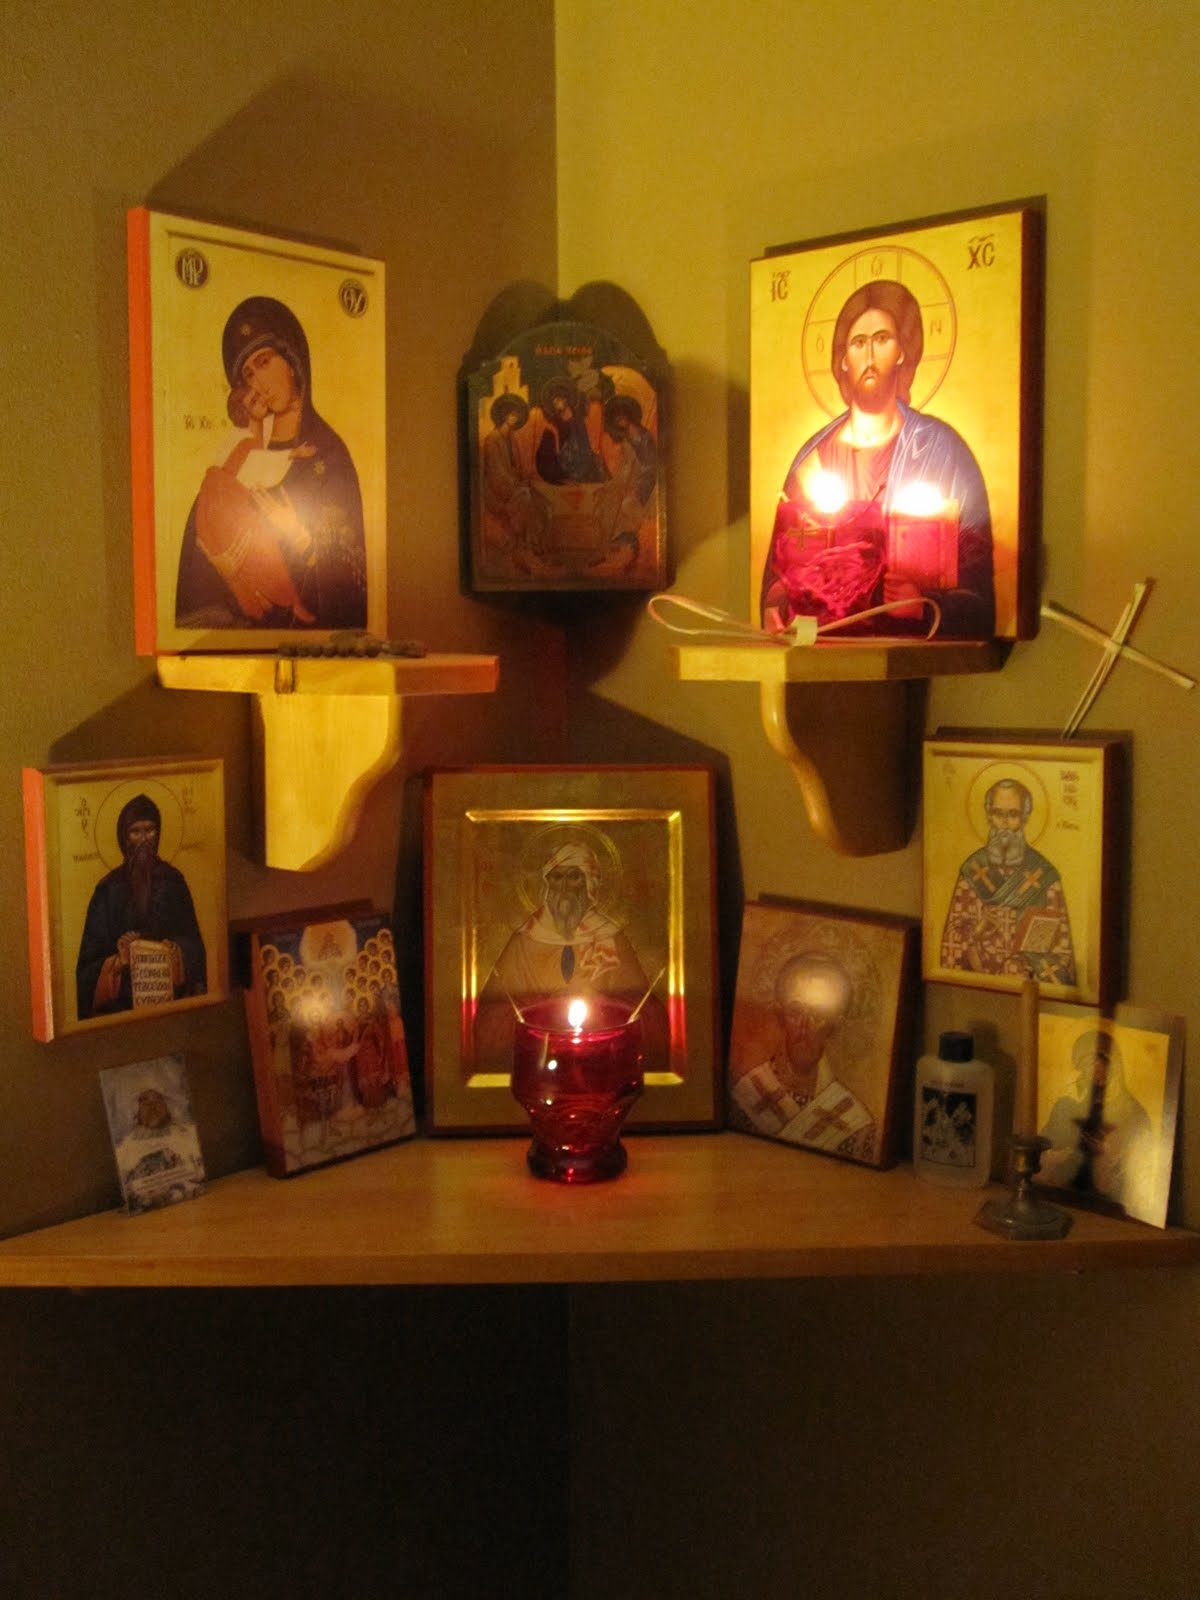 The Family Altar, a Place of Prayer dans images sacrée icon-corner-01